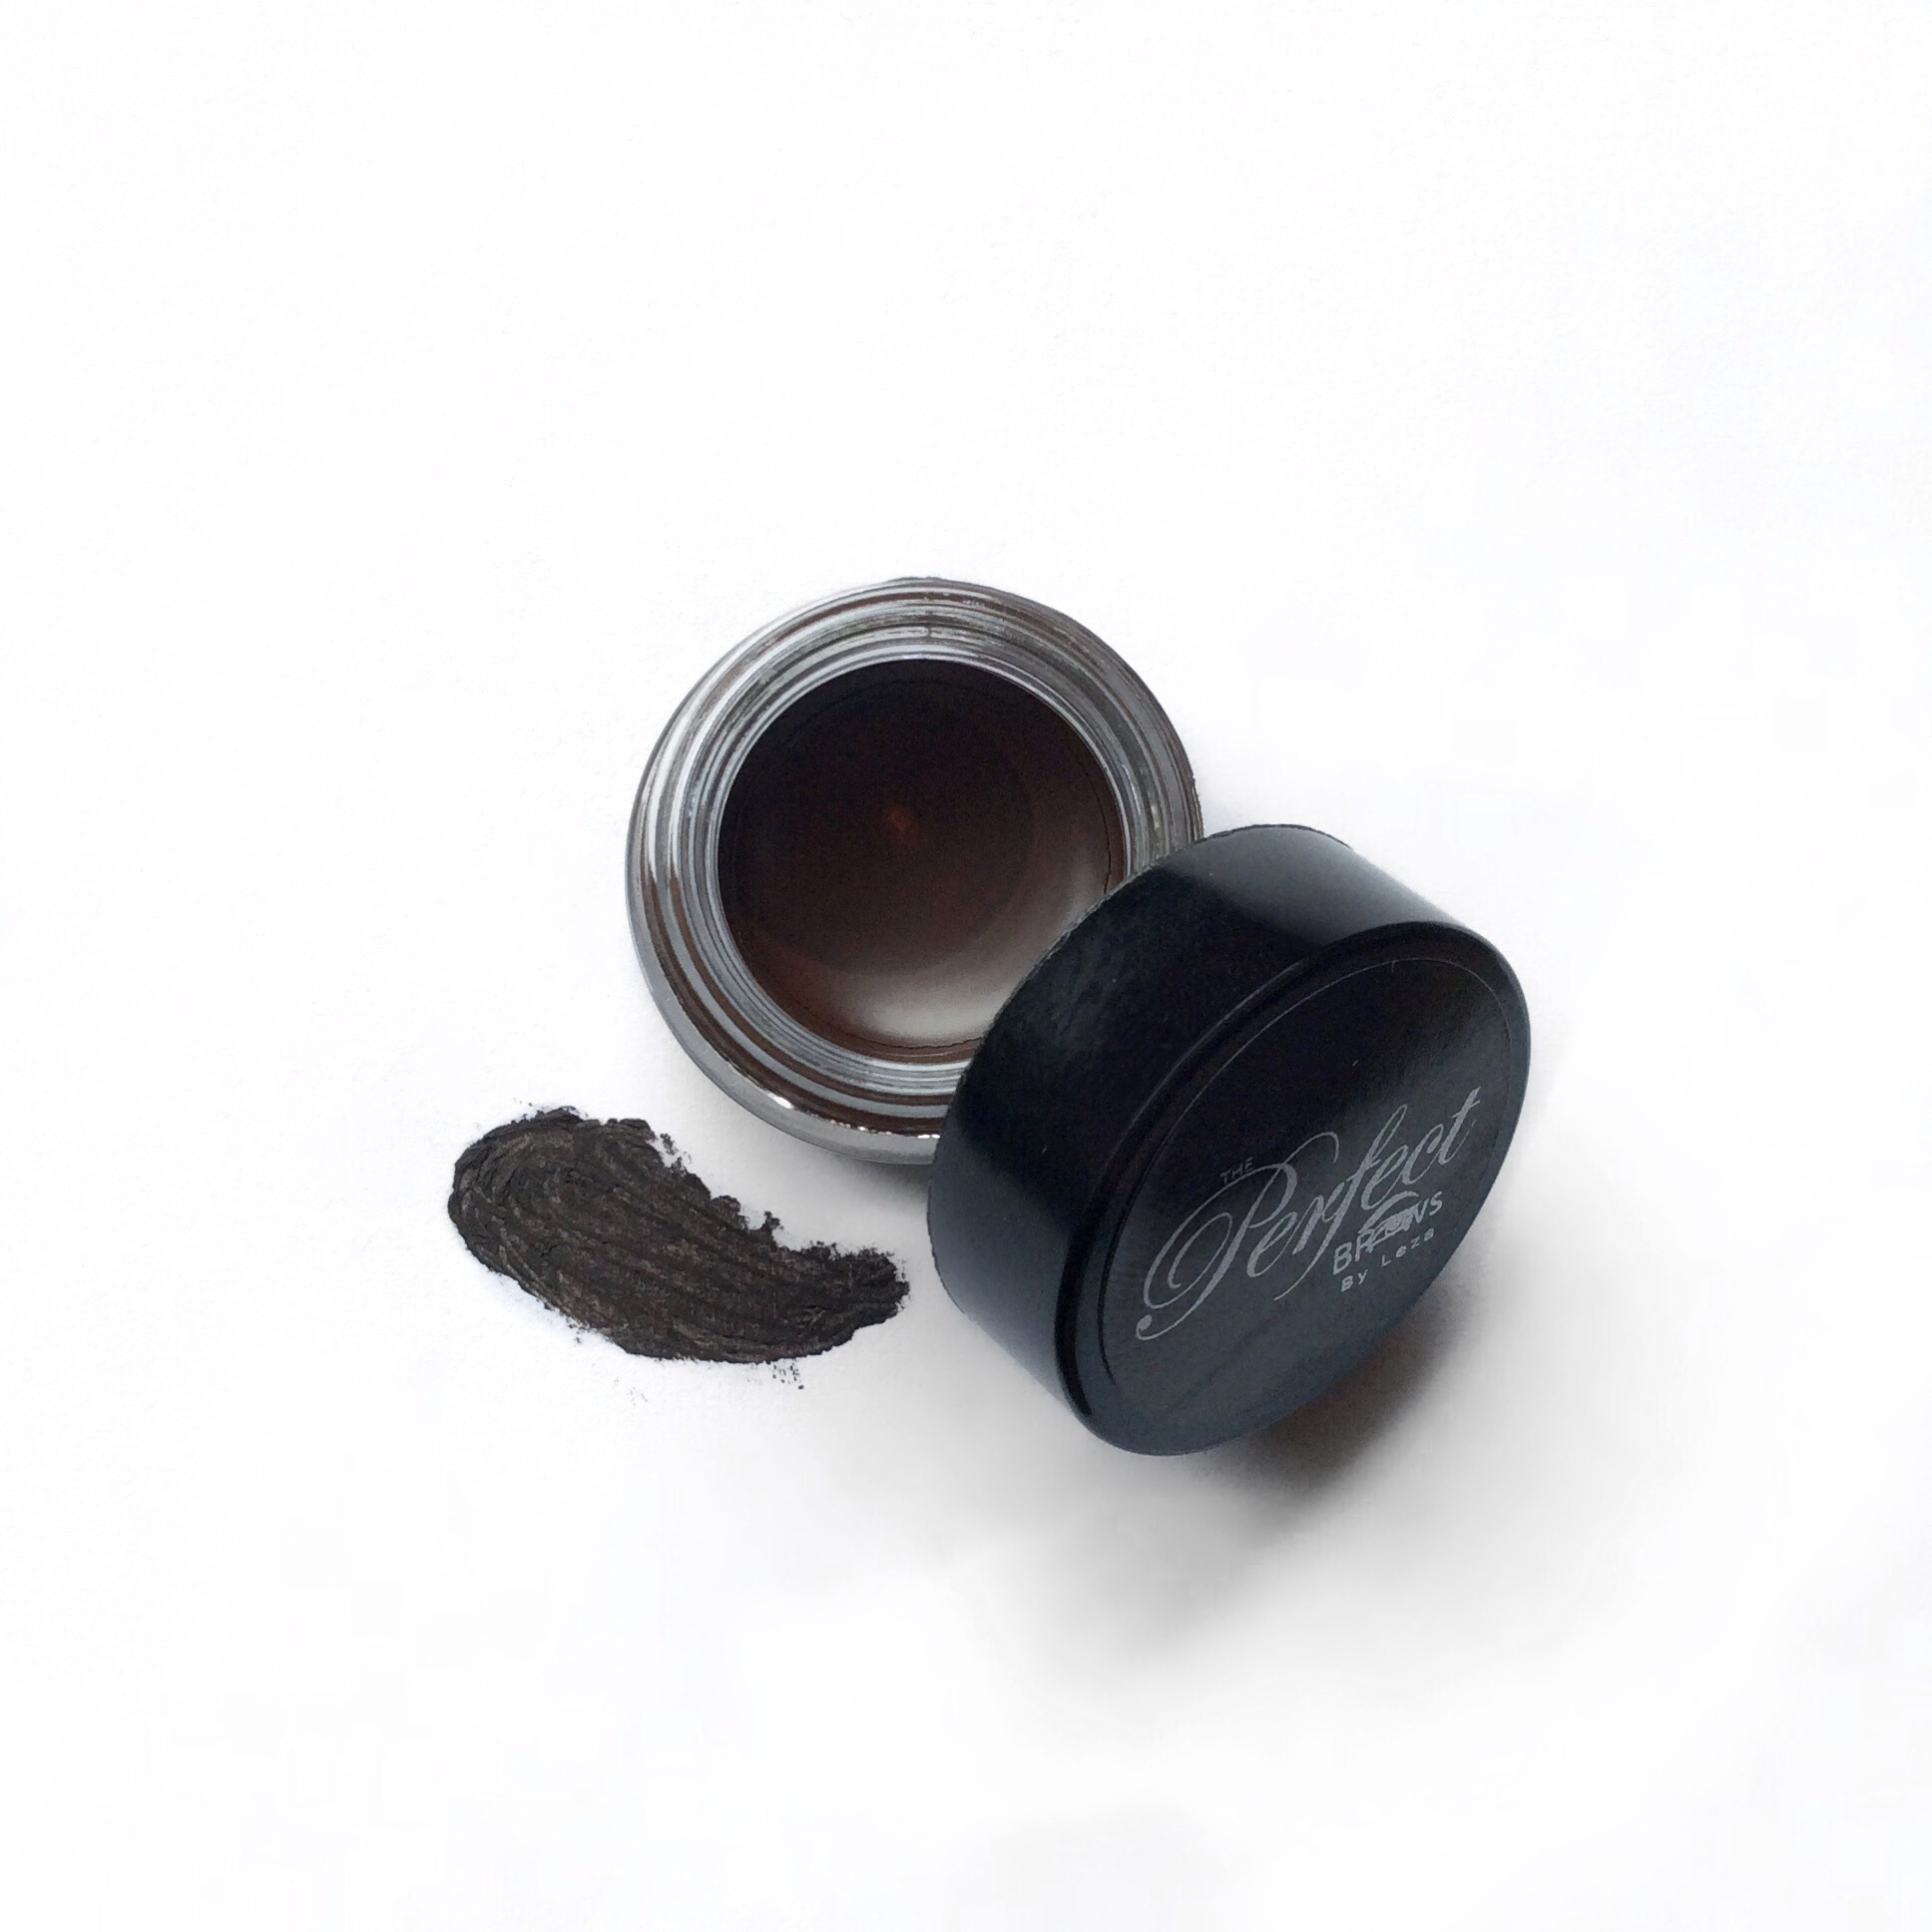 Waterproof Gel Brow Liner in Dark Brown